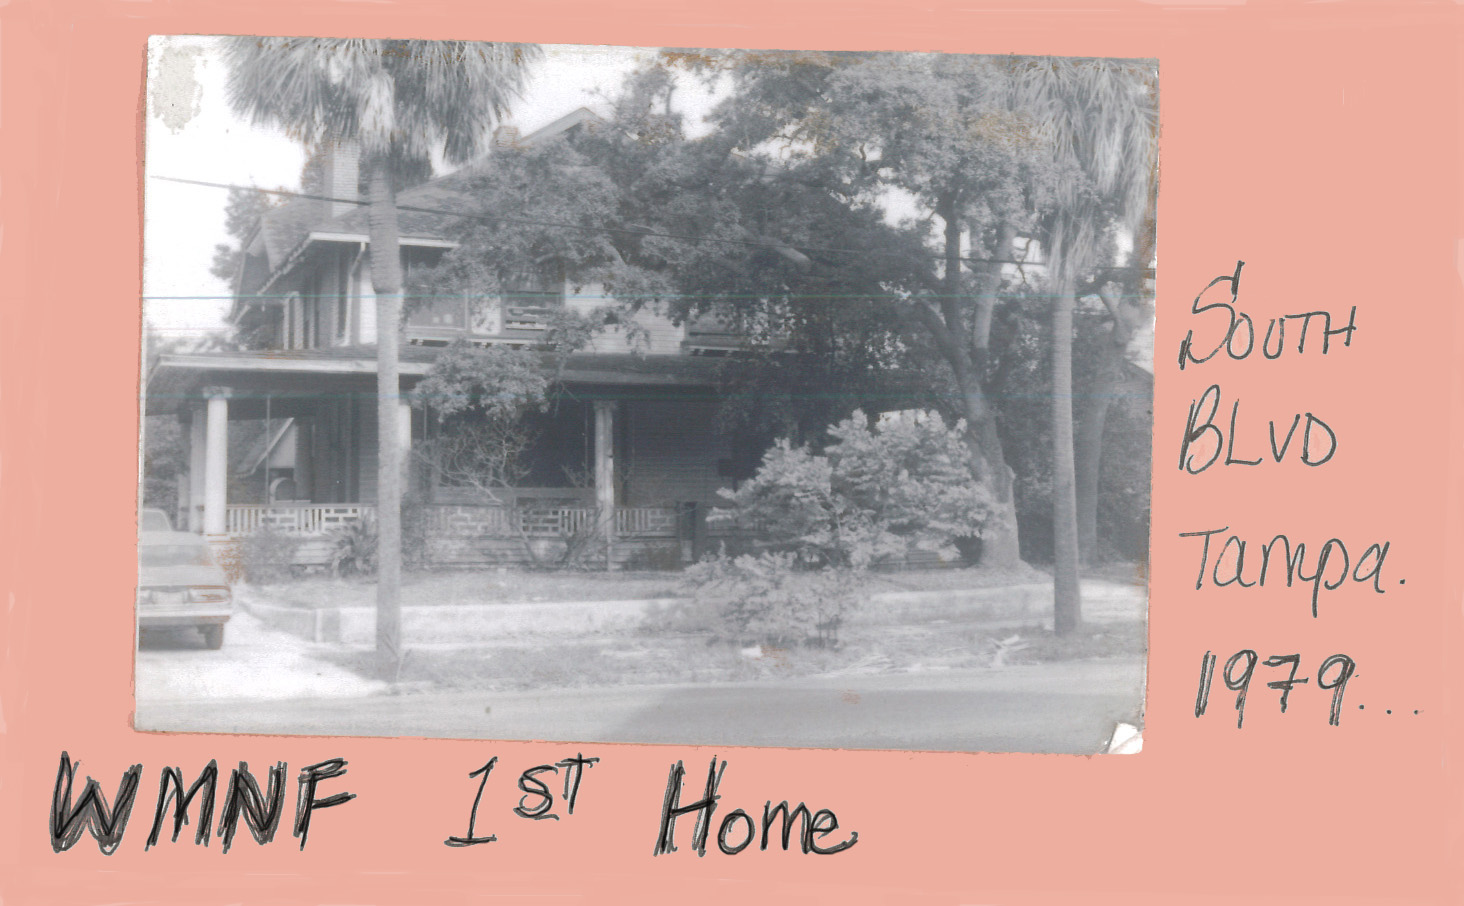 WMNF first home